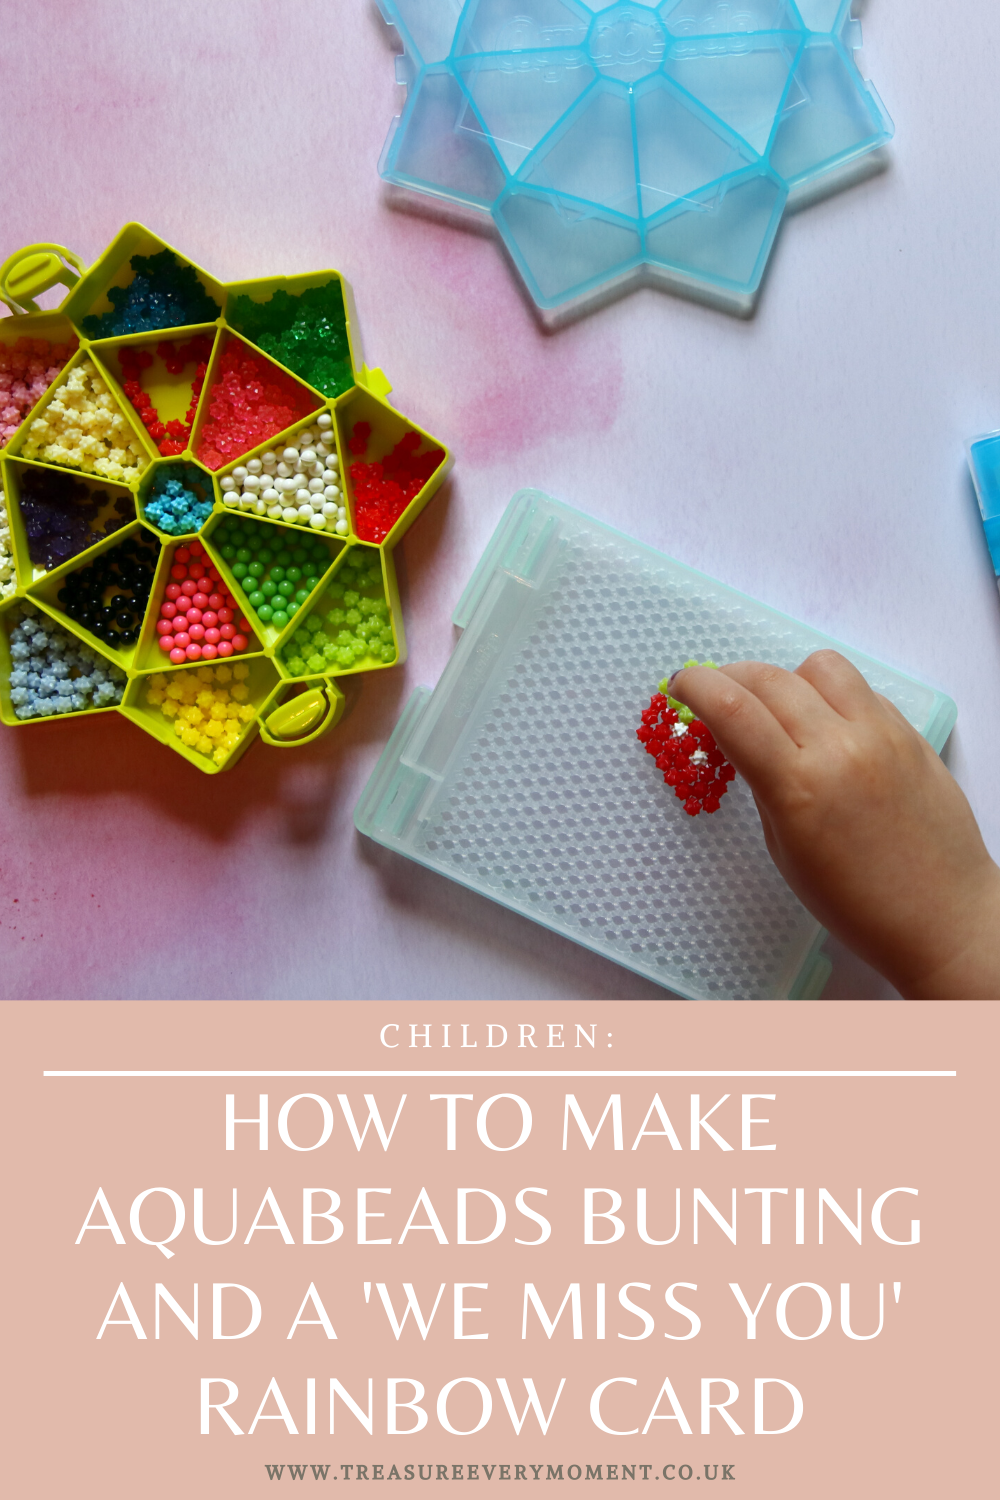 CHILDREN: How to Make Aquabeads Bunting and a 'We Miss You' Rainbow Card